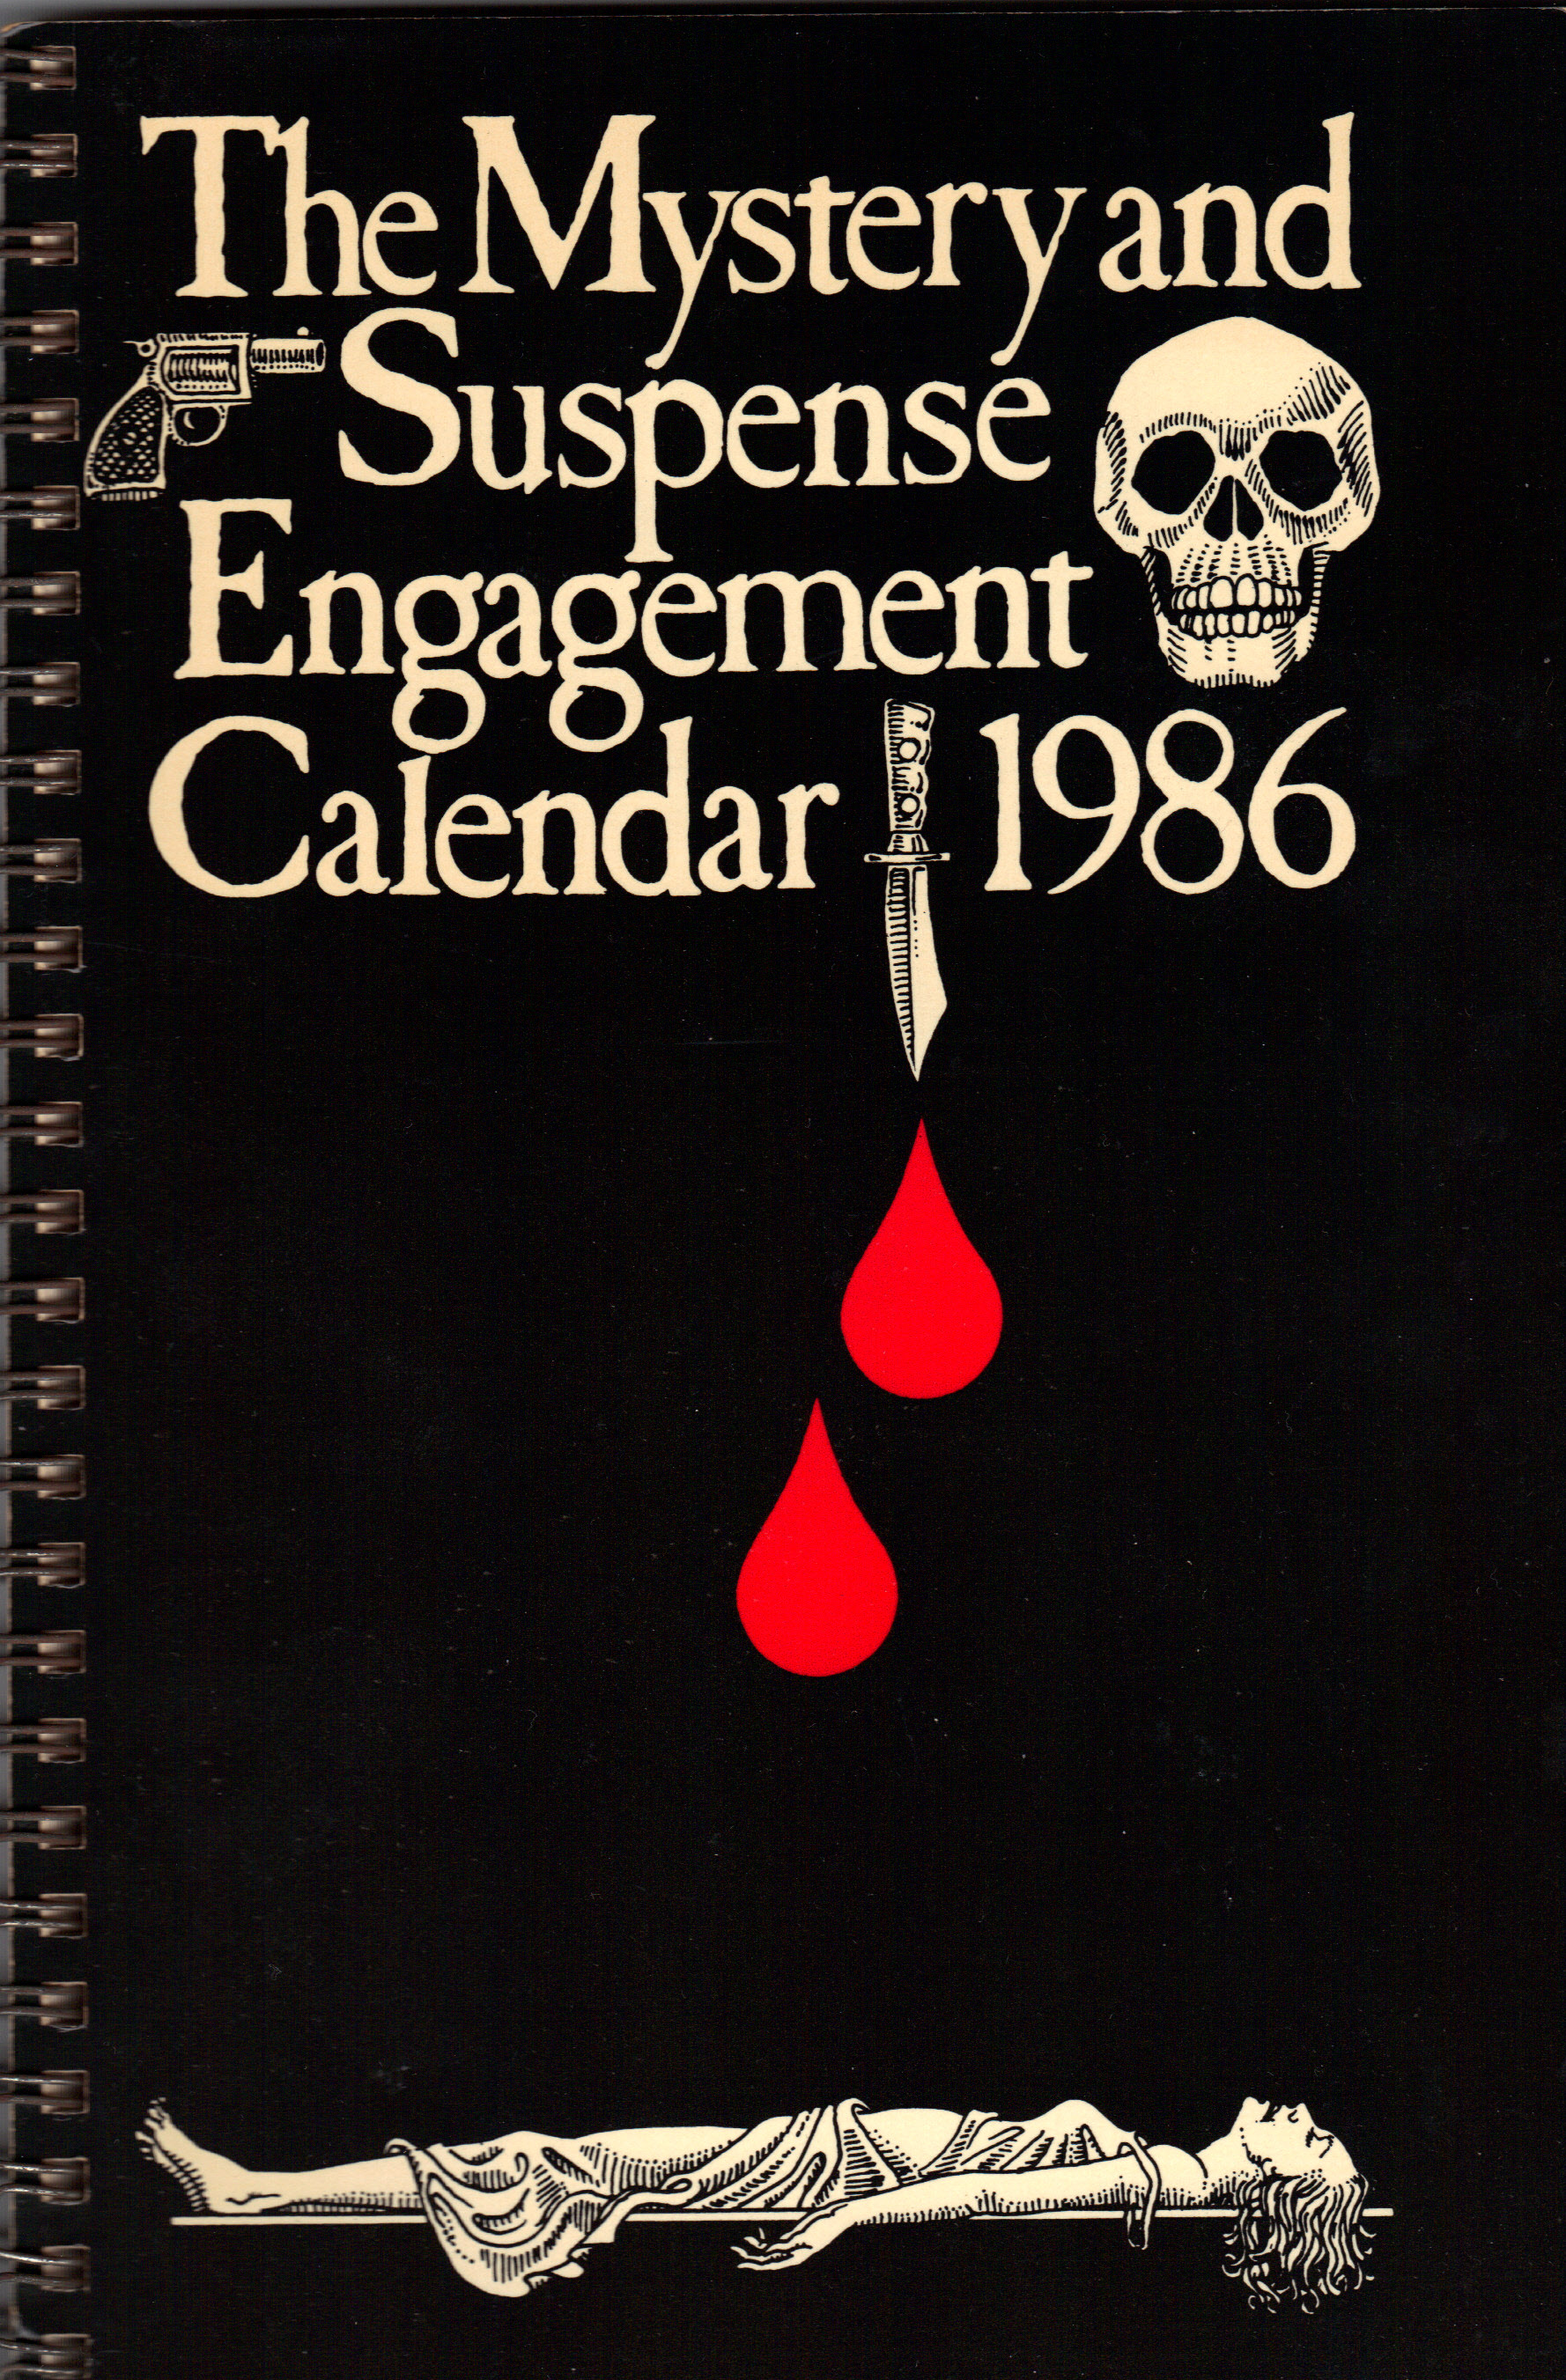 Image for THE MYSTERY AND SUSPENSE ENGAGEMENT CALENDAR 1986